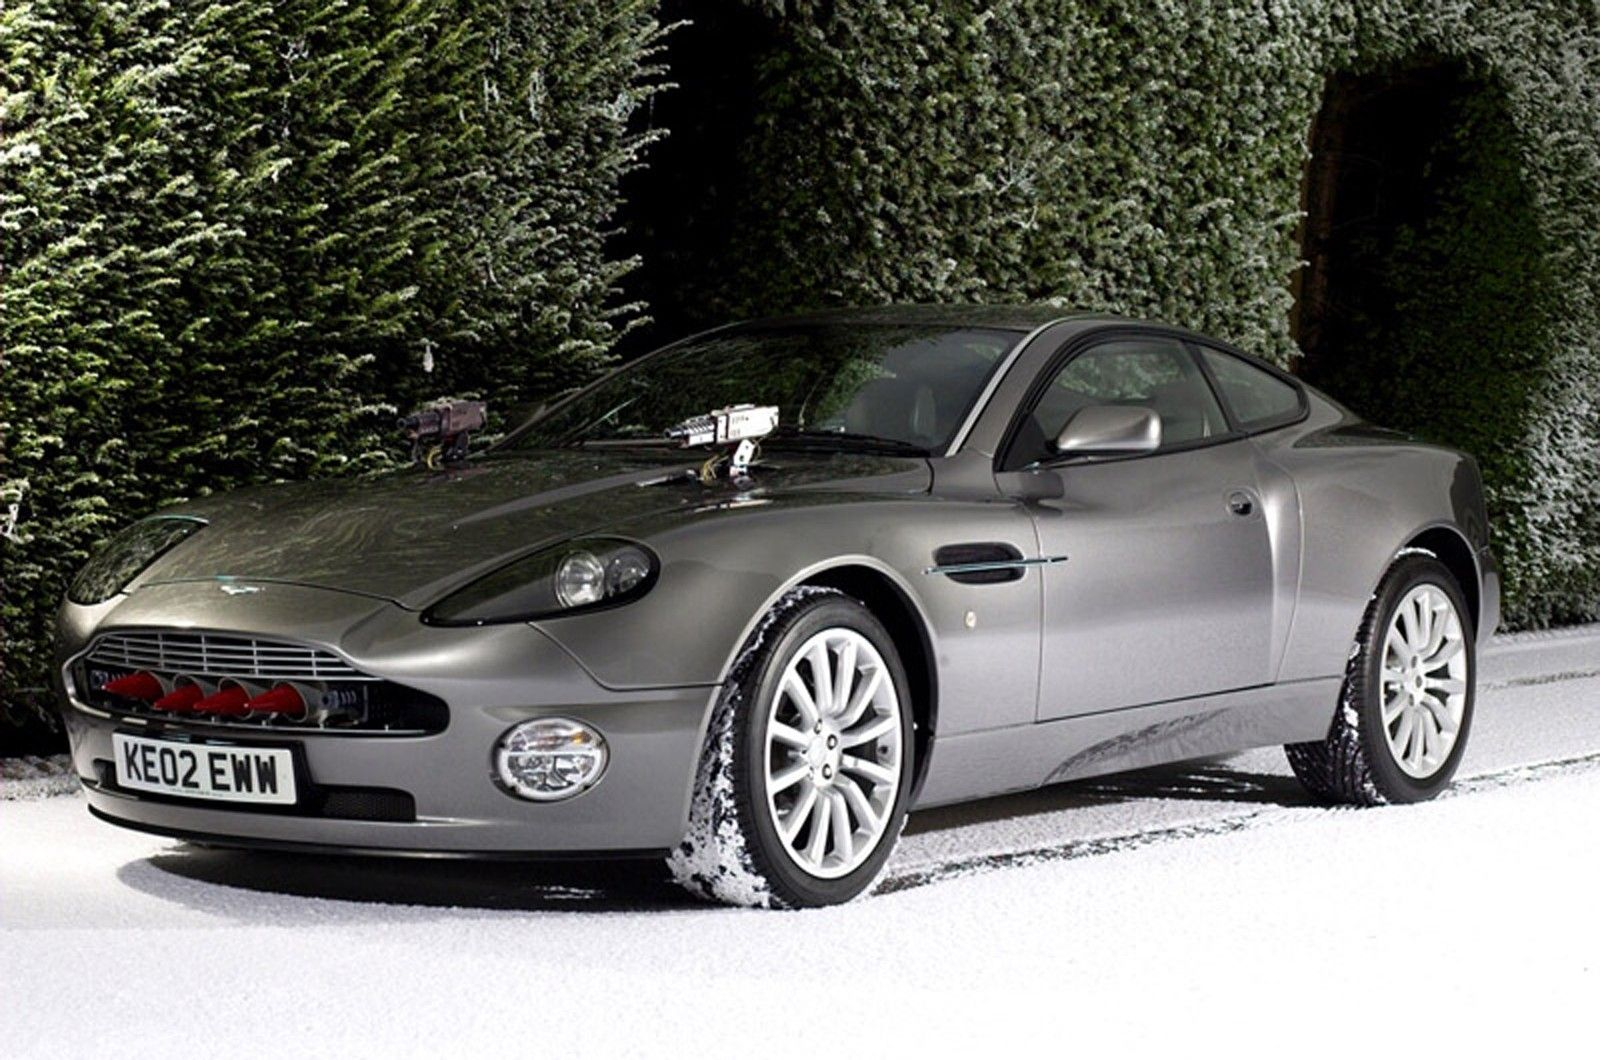 The Aston Martin V12 Vanquish, Featured In Skyfall